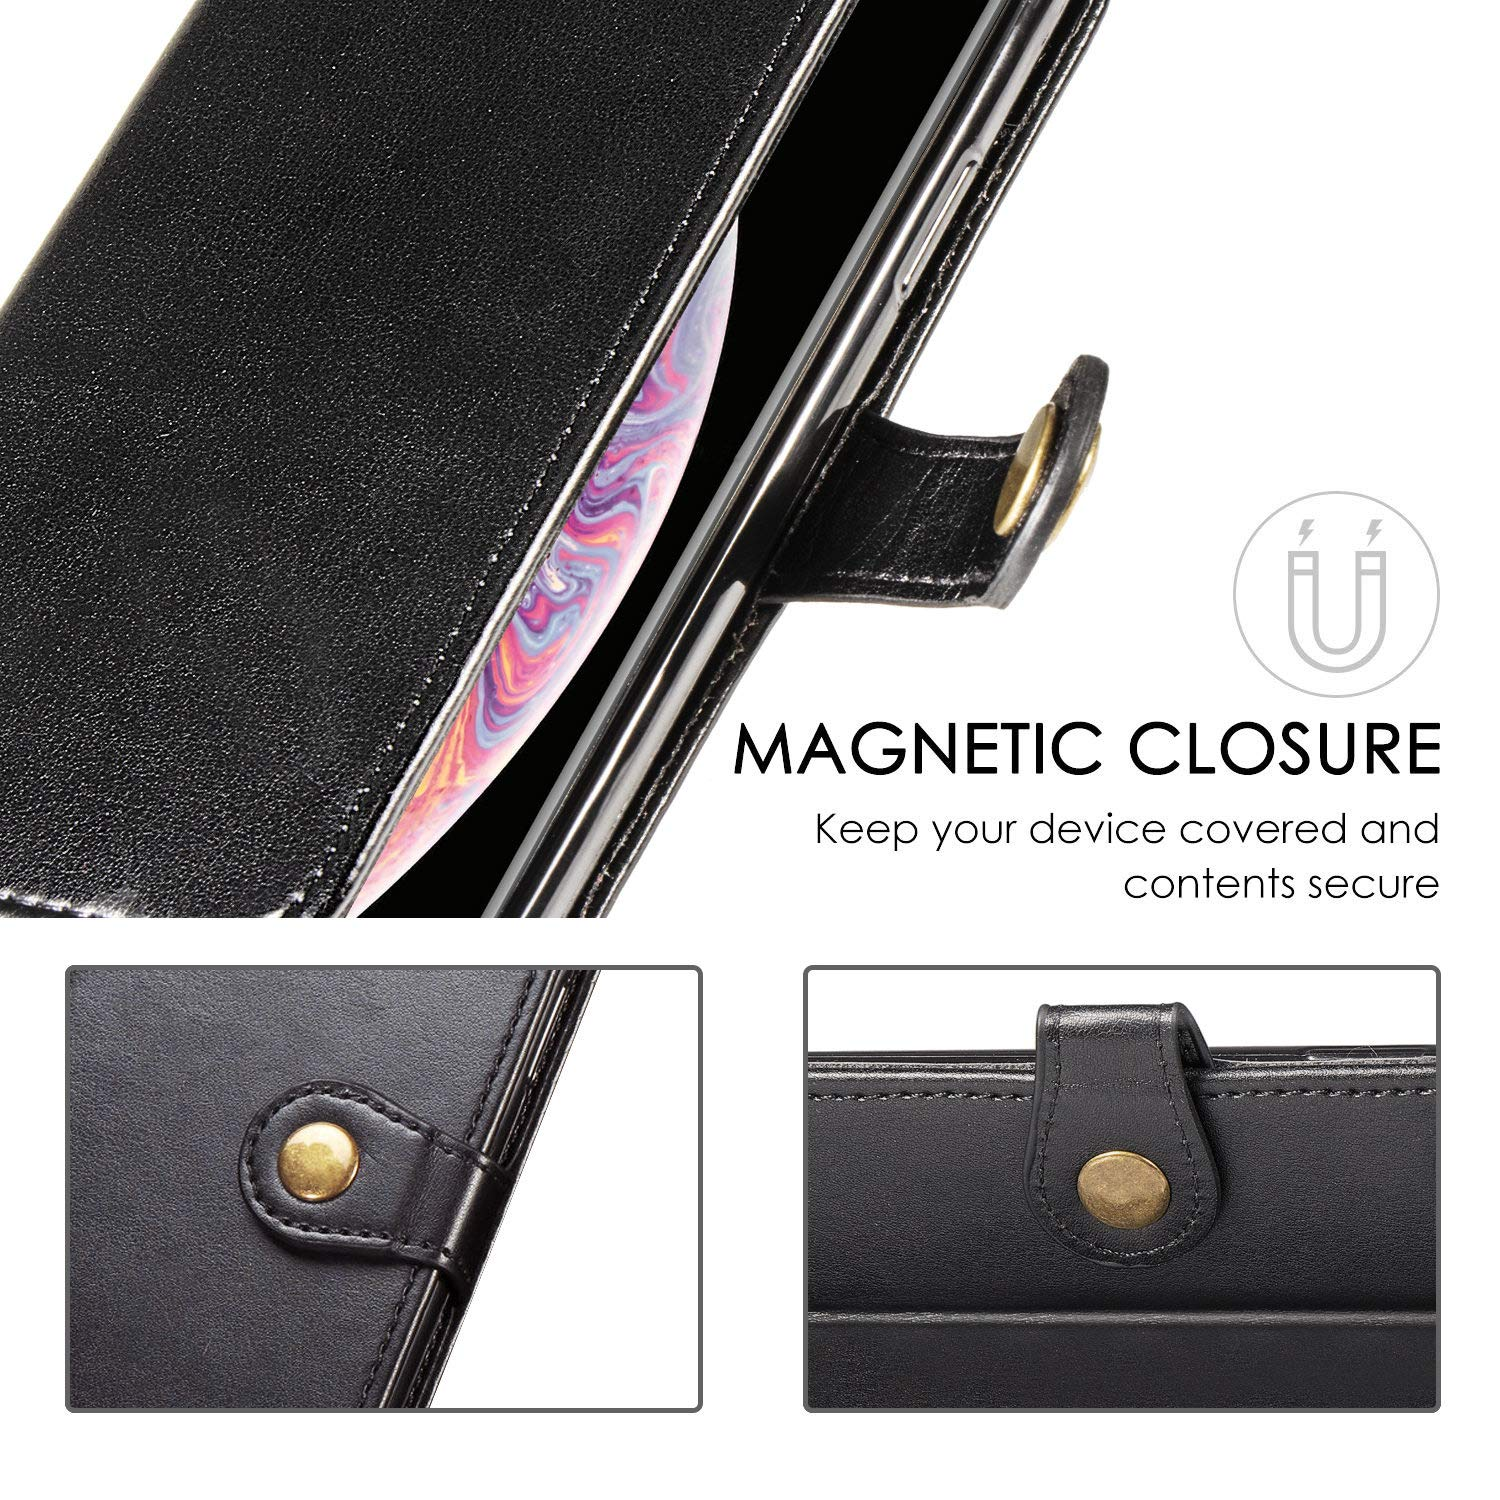 AILRINNI Case for Huawei Mate 30 lite, Premium Leather Flip Wallet Phone Cover Case with Magnetic Closure/Kickstand/Card Slot for Huawei Mate 30 lite-Black